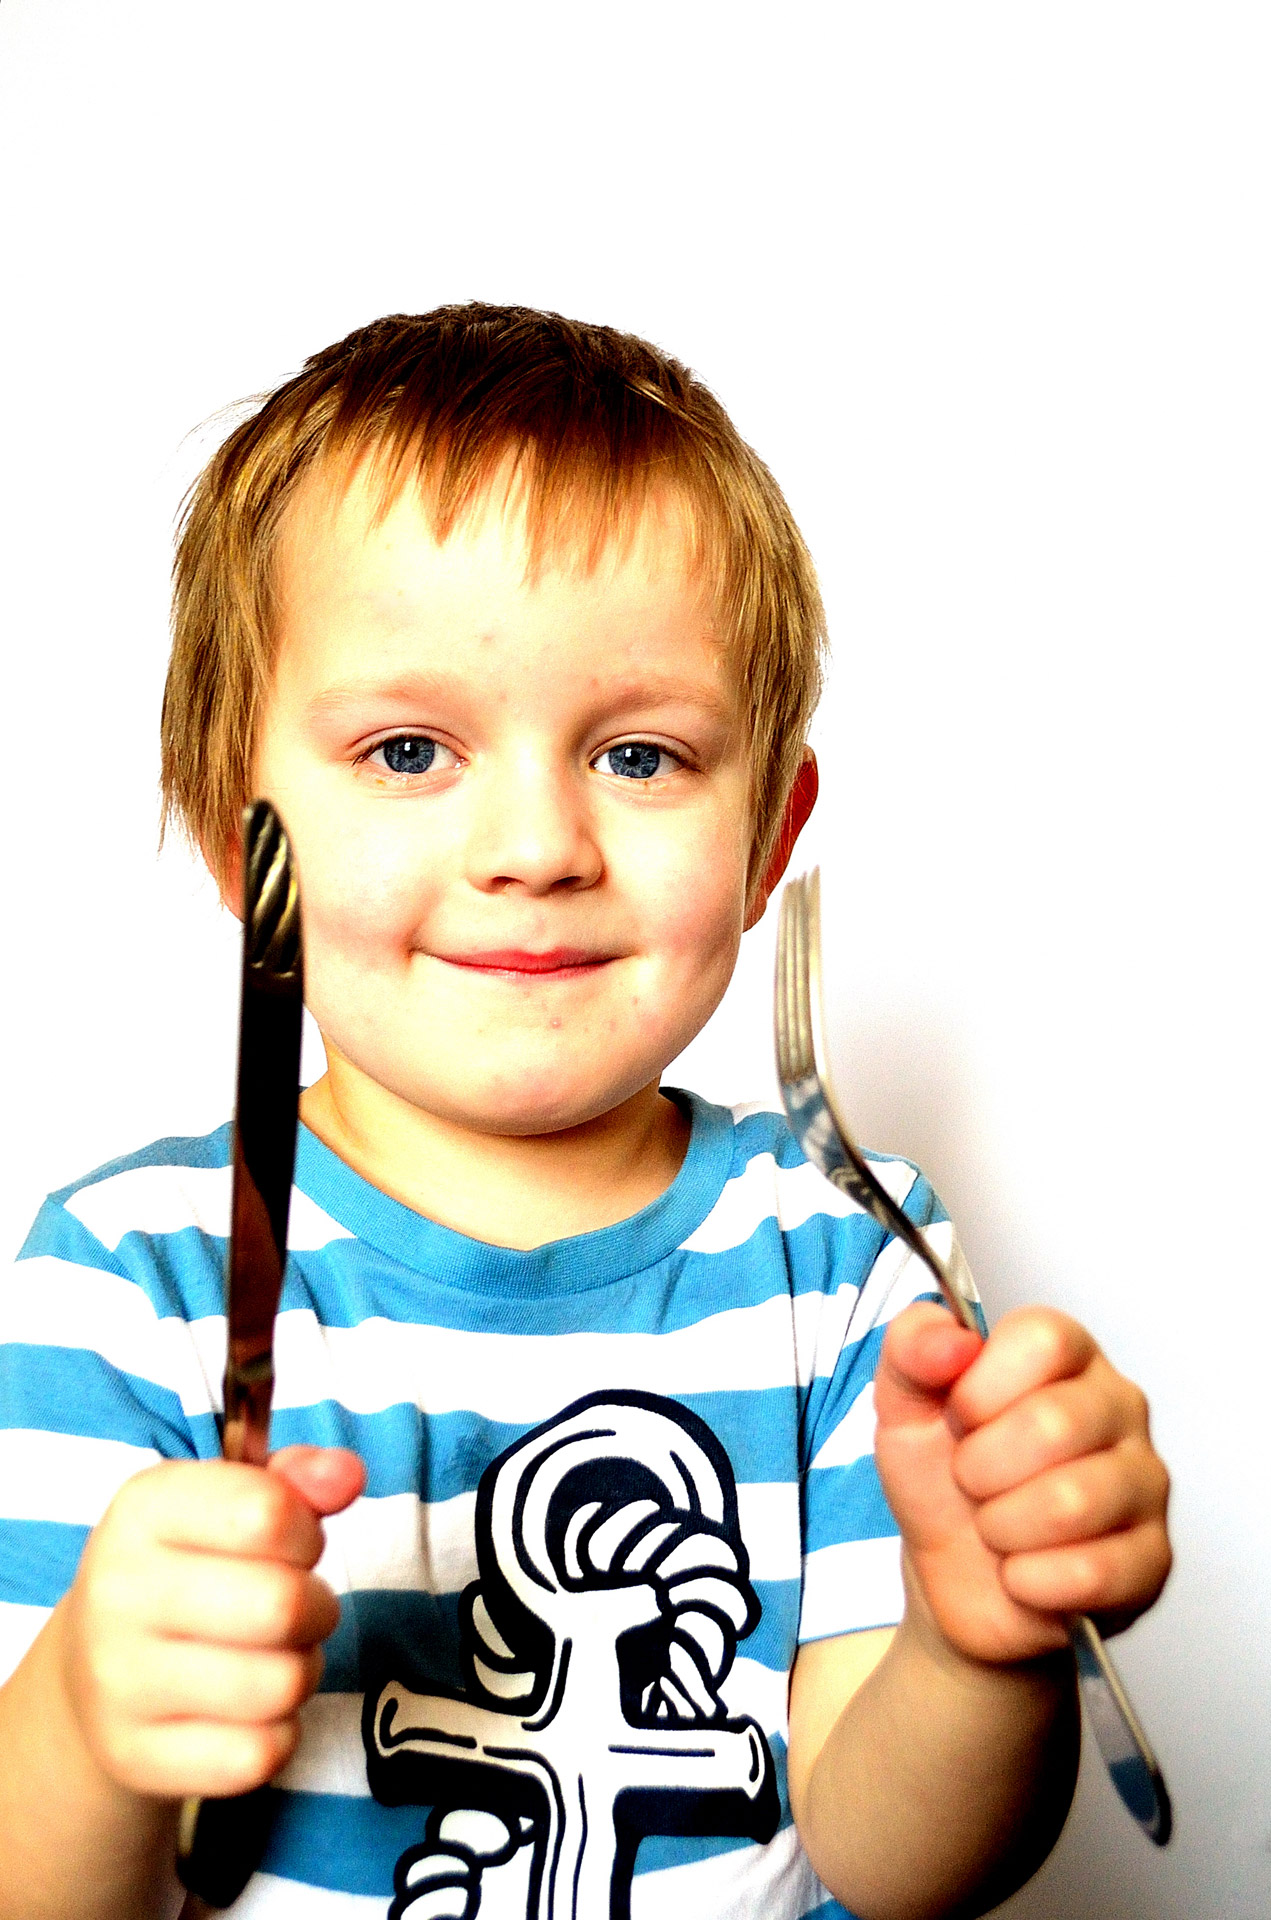 Hungry Child Free Stock Photo  Public Domain Pictures